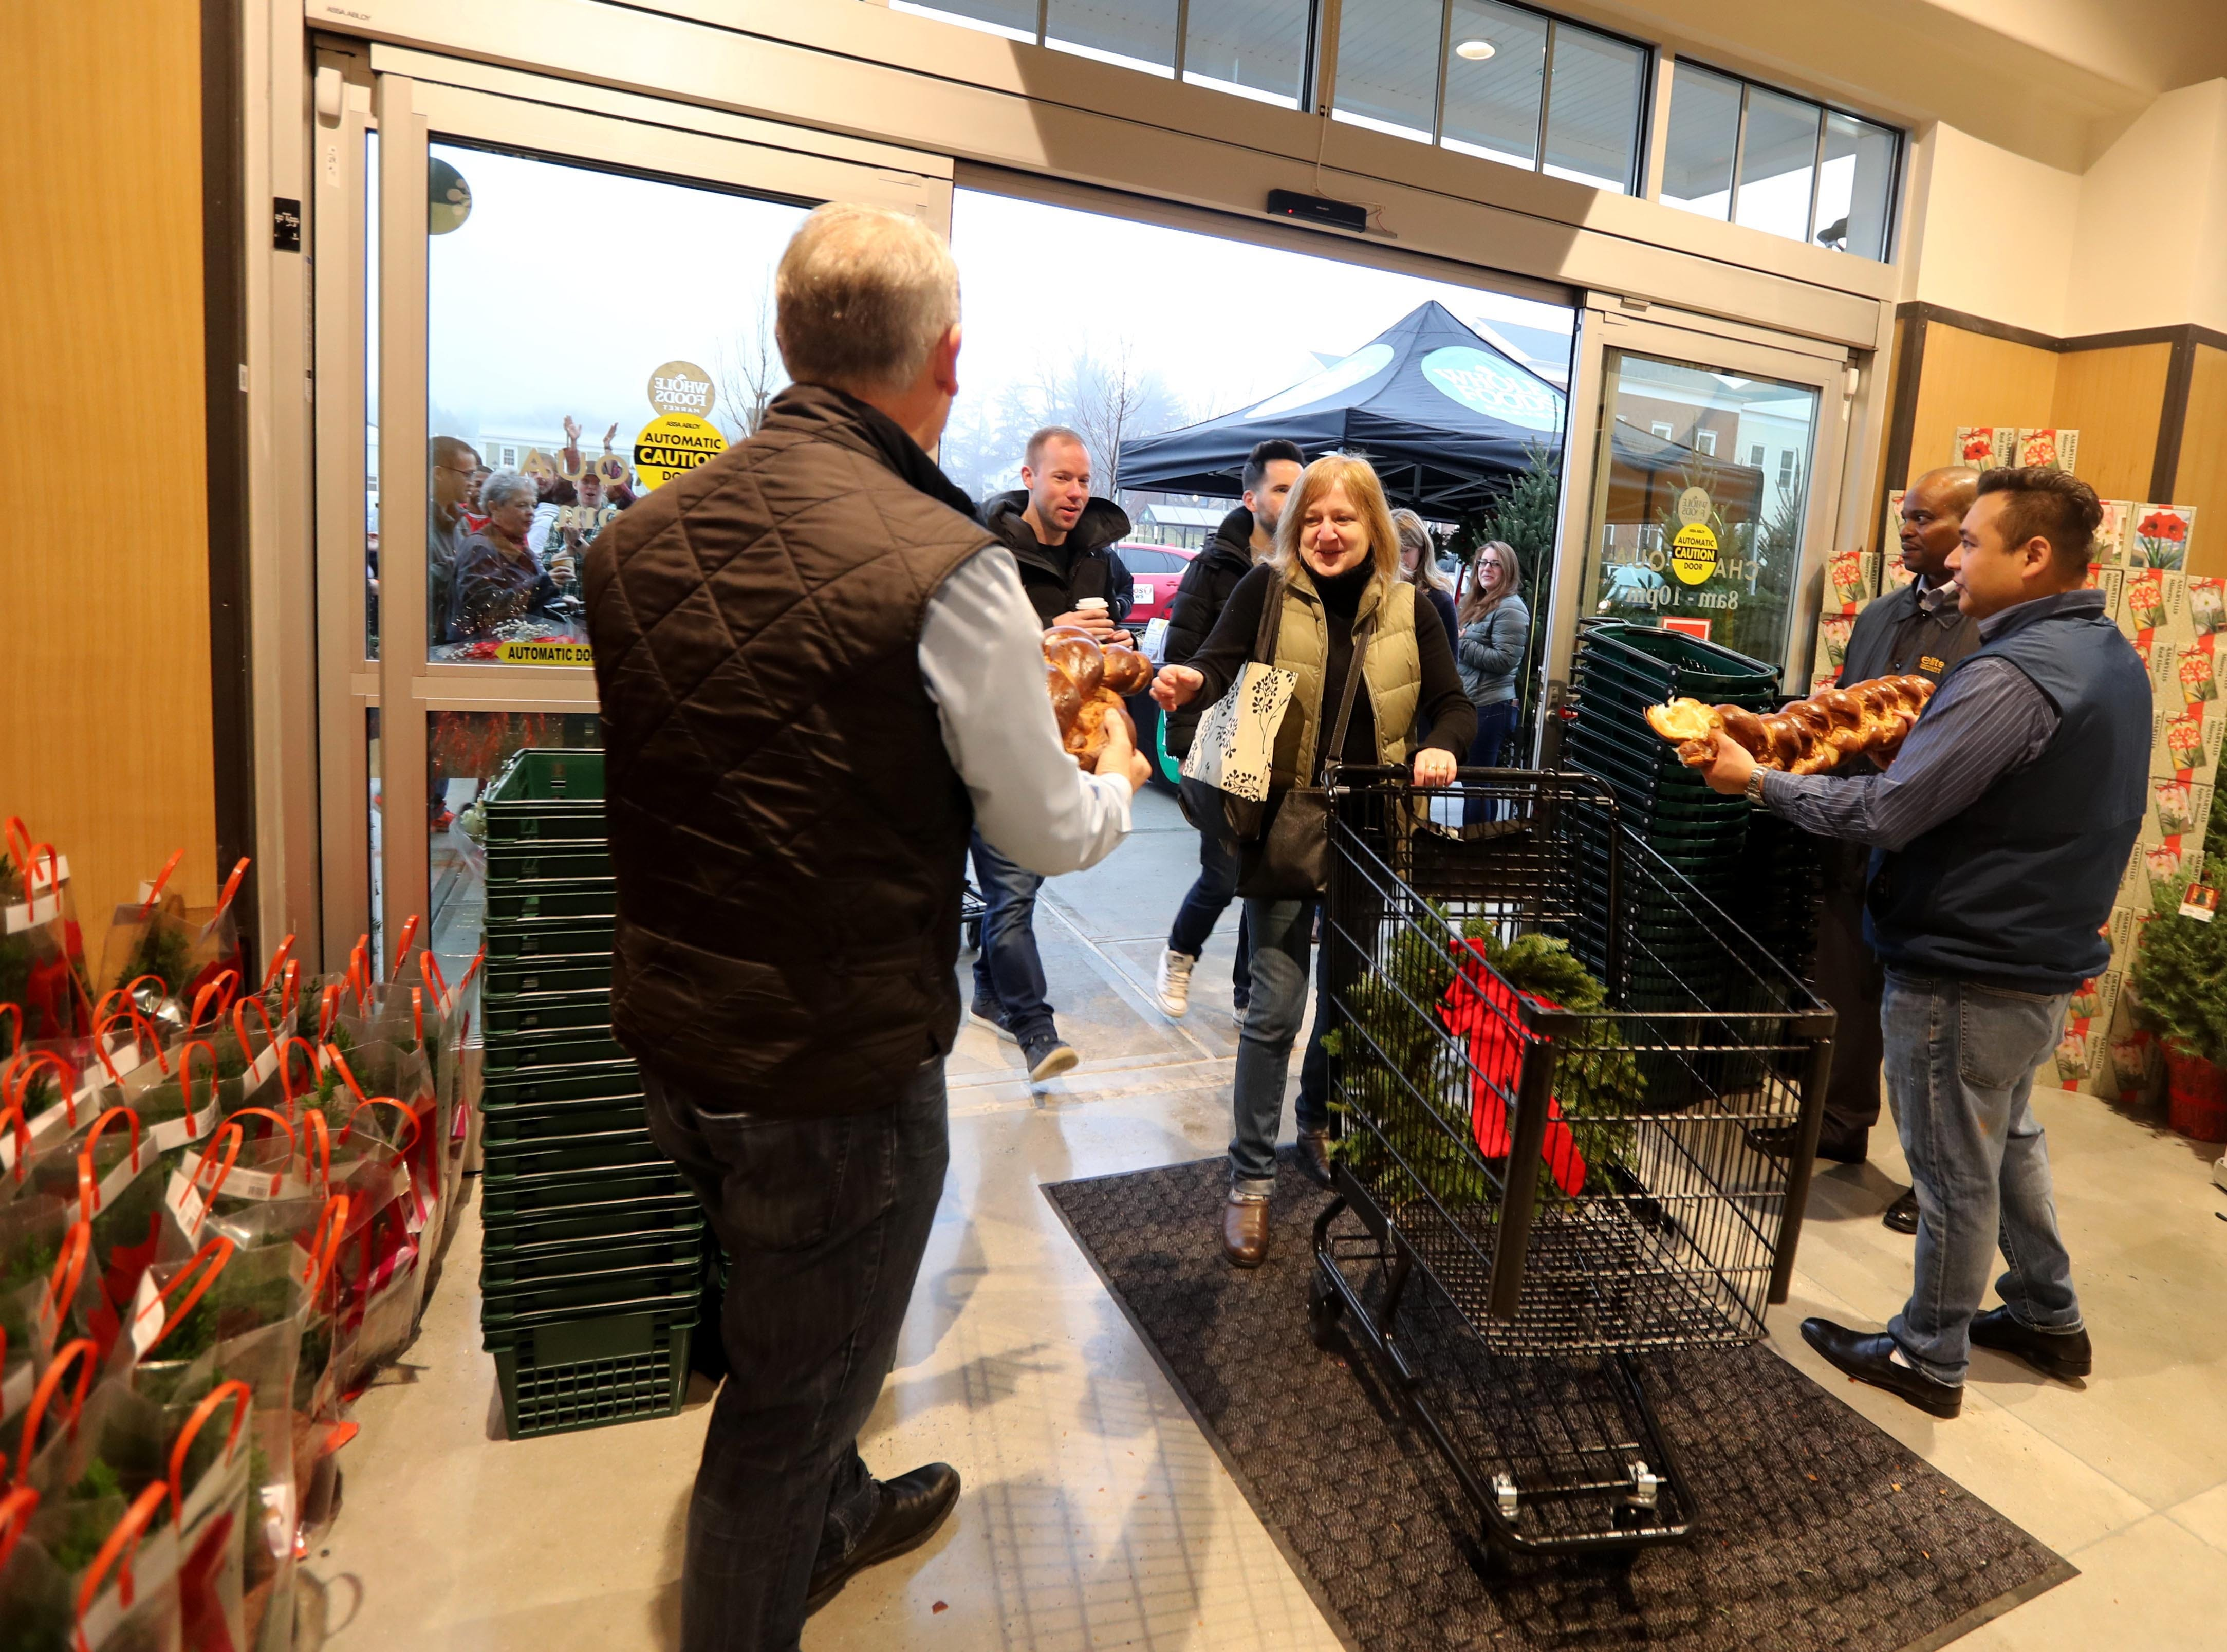 Whole Foods employees hand pieces of bread to the first shoppers during the grand opening of the supermarket at Chappaqua Crossing  Dec. 15, 2018. The 40,000 square foot store opened to shoppers on the site of the formers Readers Digest headquarters. The New Castle Town Board and Planning Board approved a temporary traffic plan for the Route 117-Roaring Brook Road intersection that allowed the store to open.